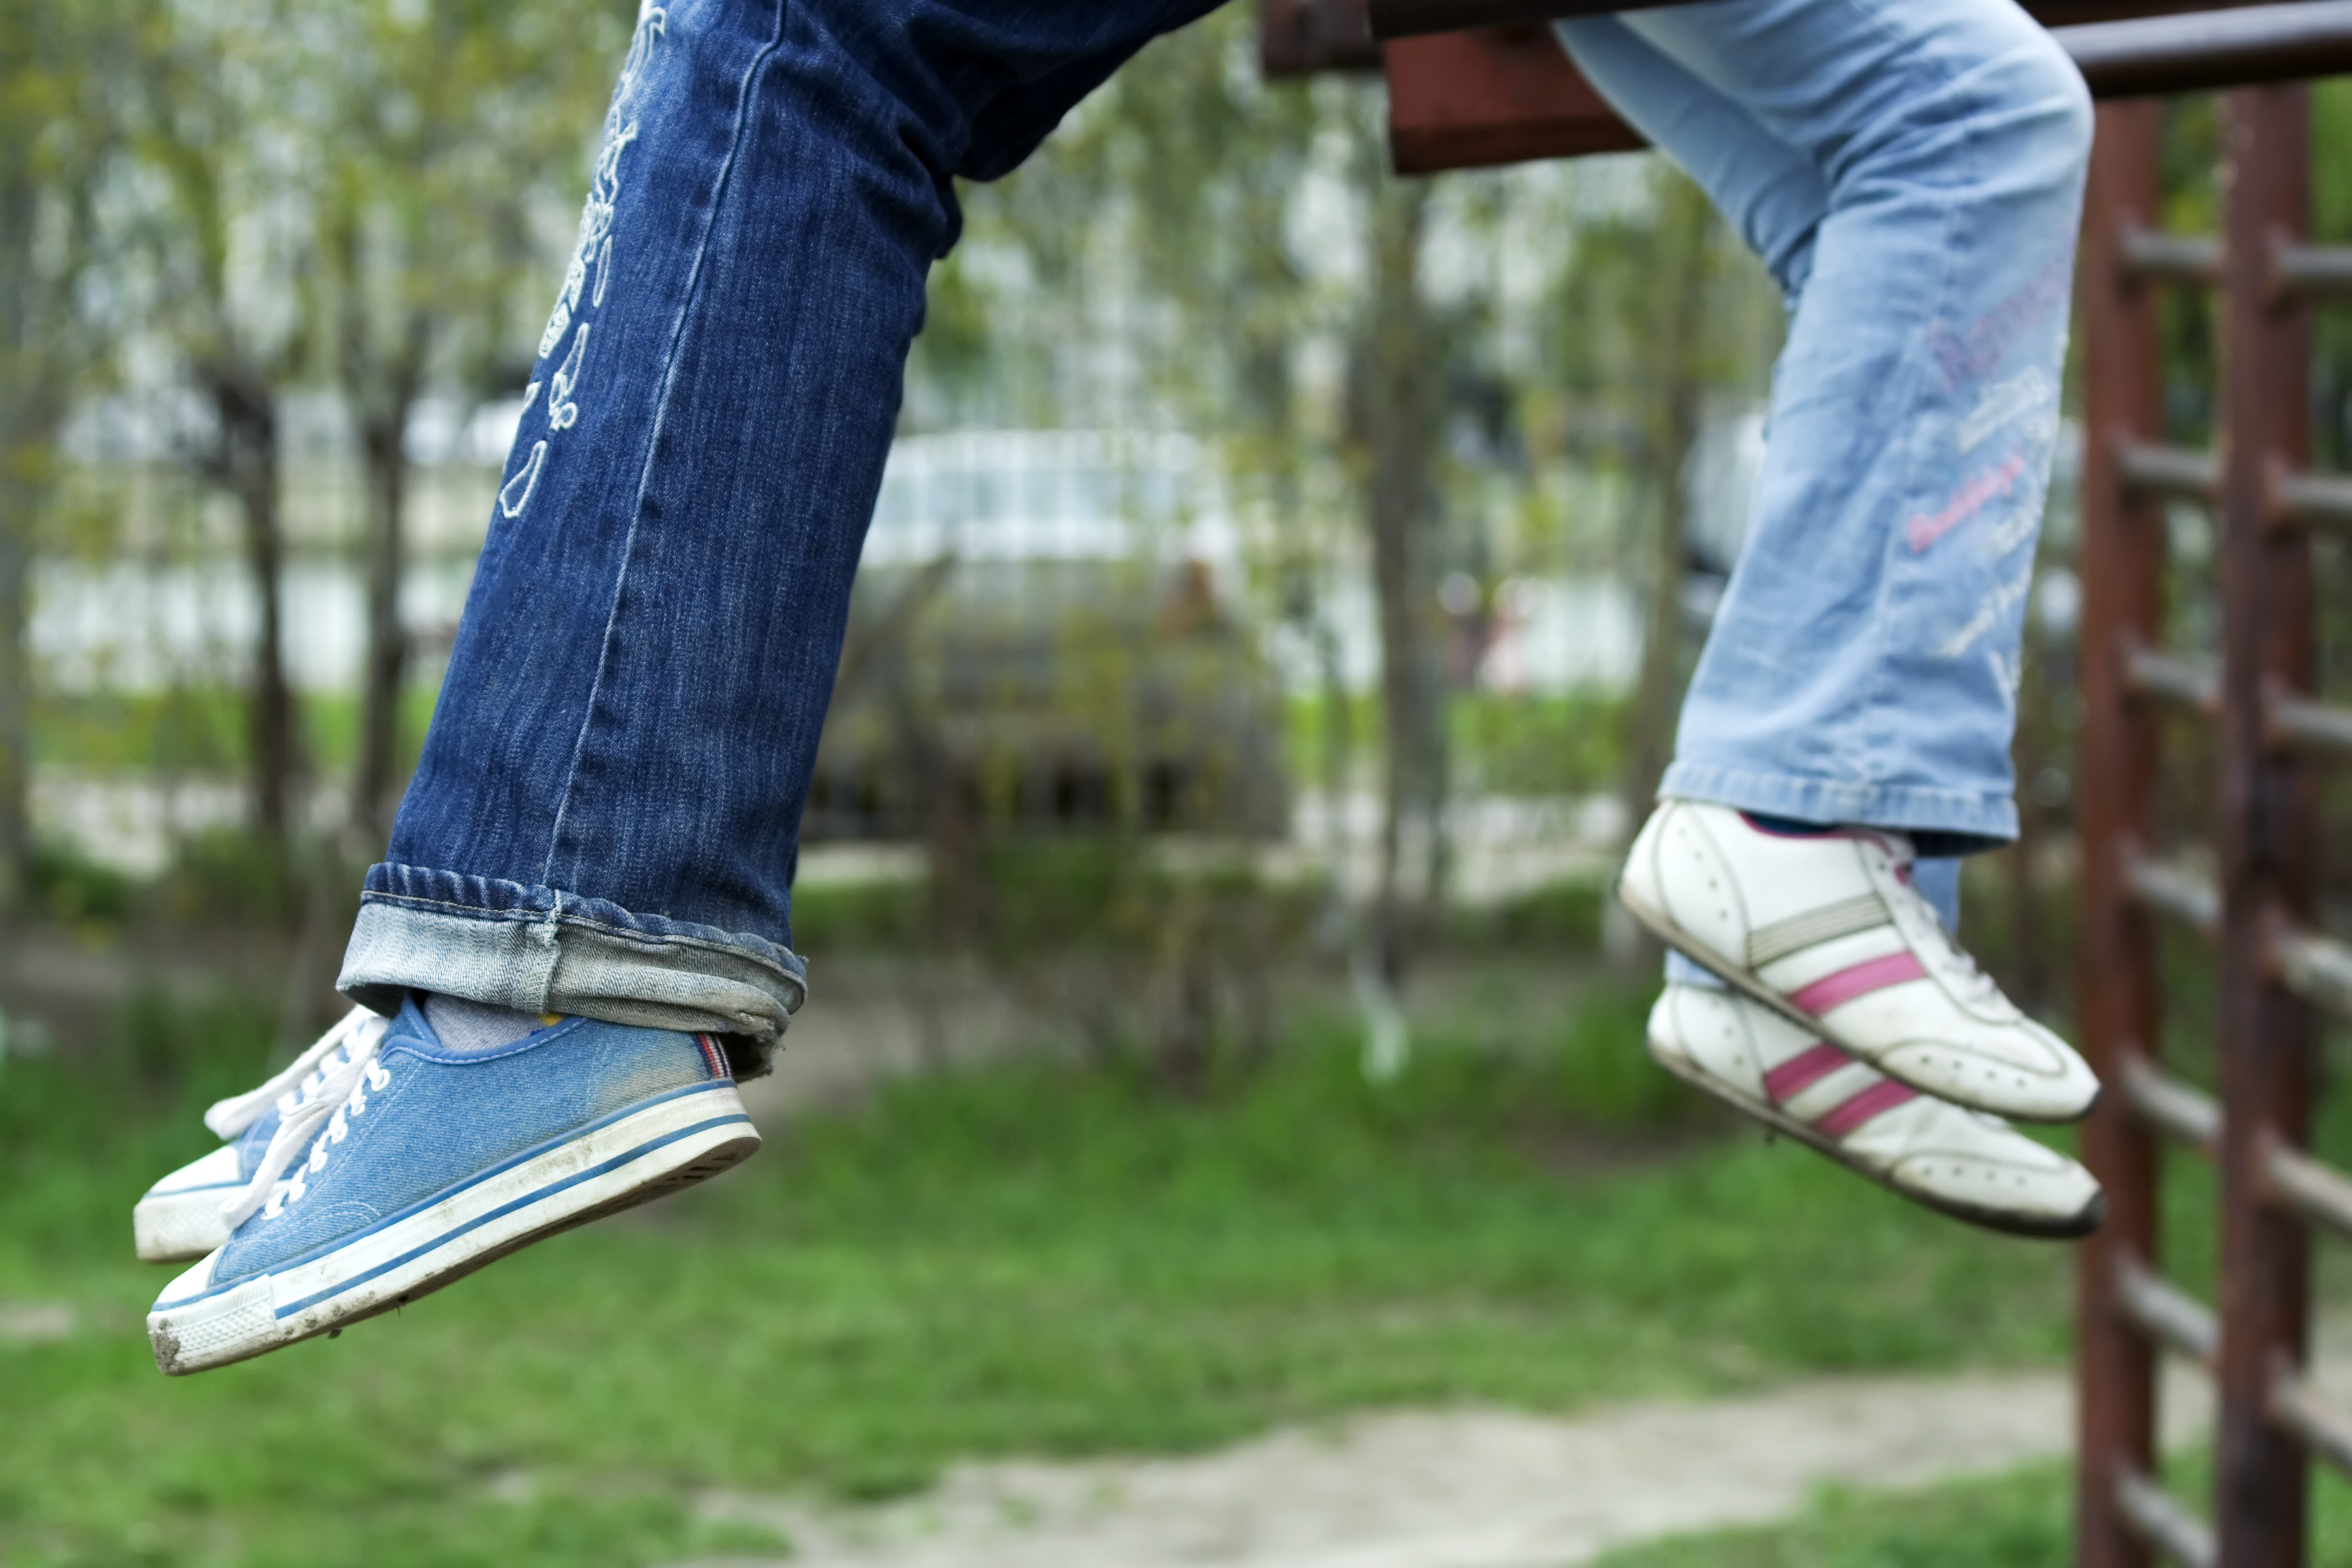 Legs of two young people wearing jeans and trainers.